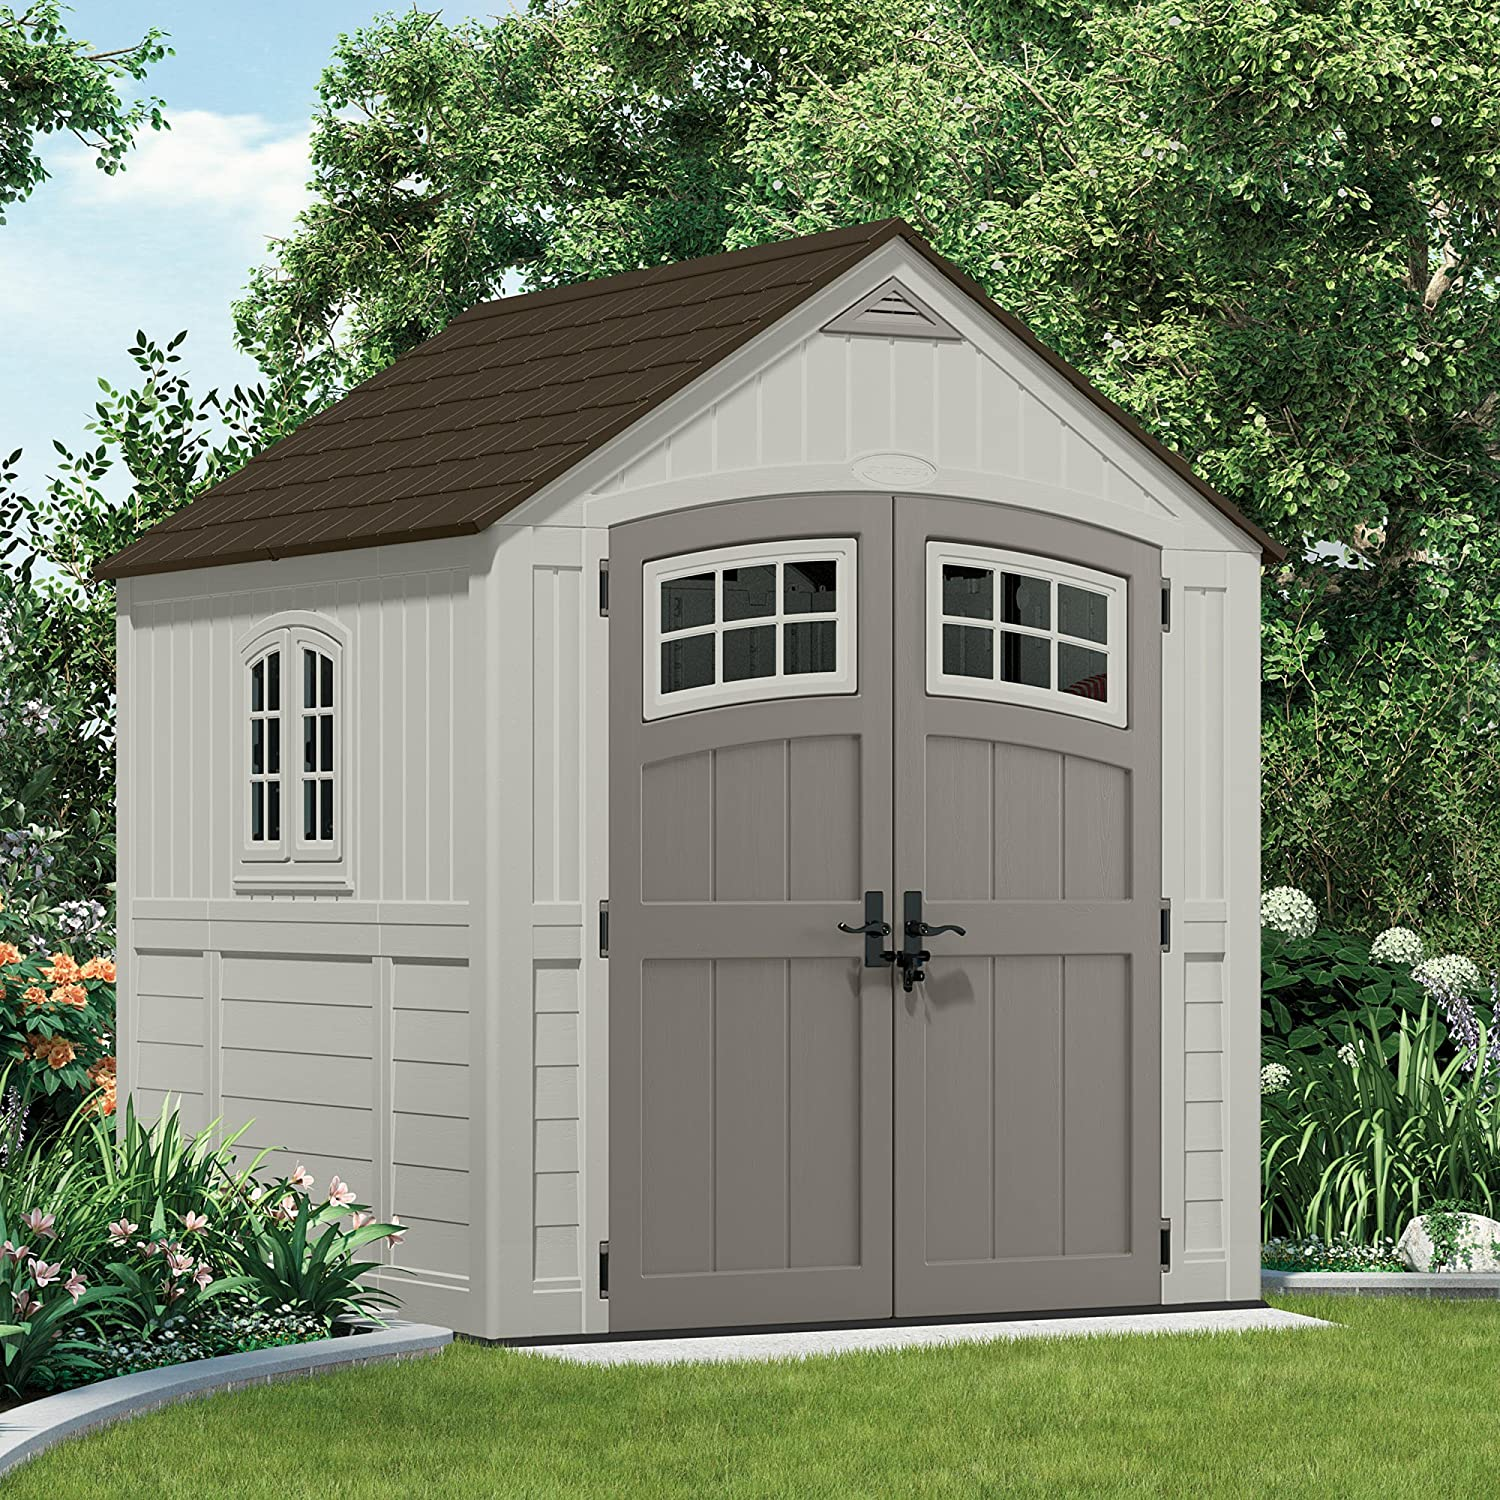 roughneck garden sheds shed plastic rubbermaid small designs vertical storage outdoor